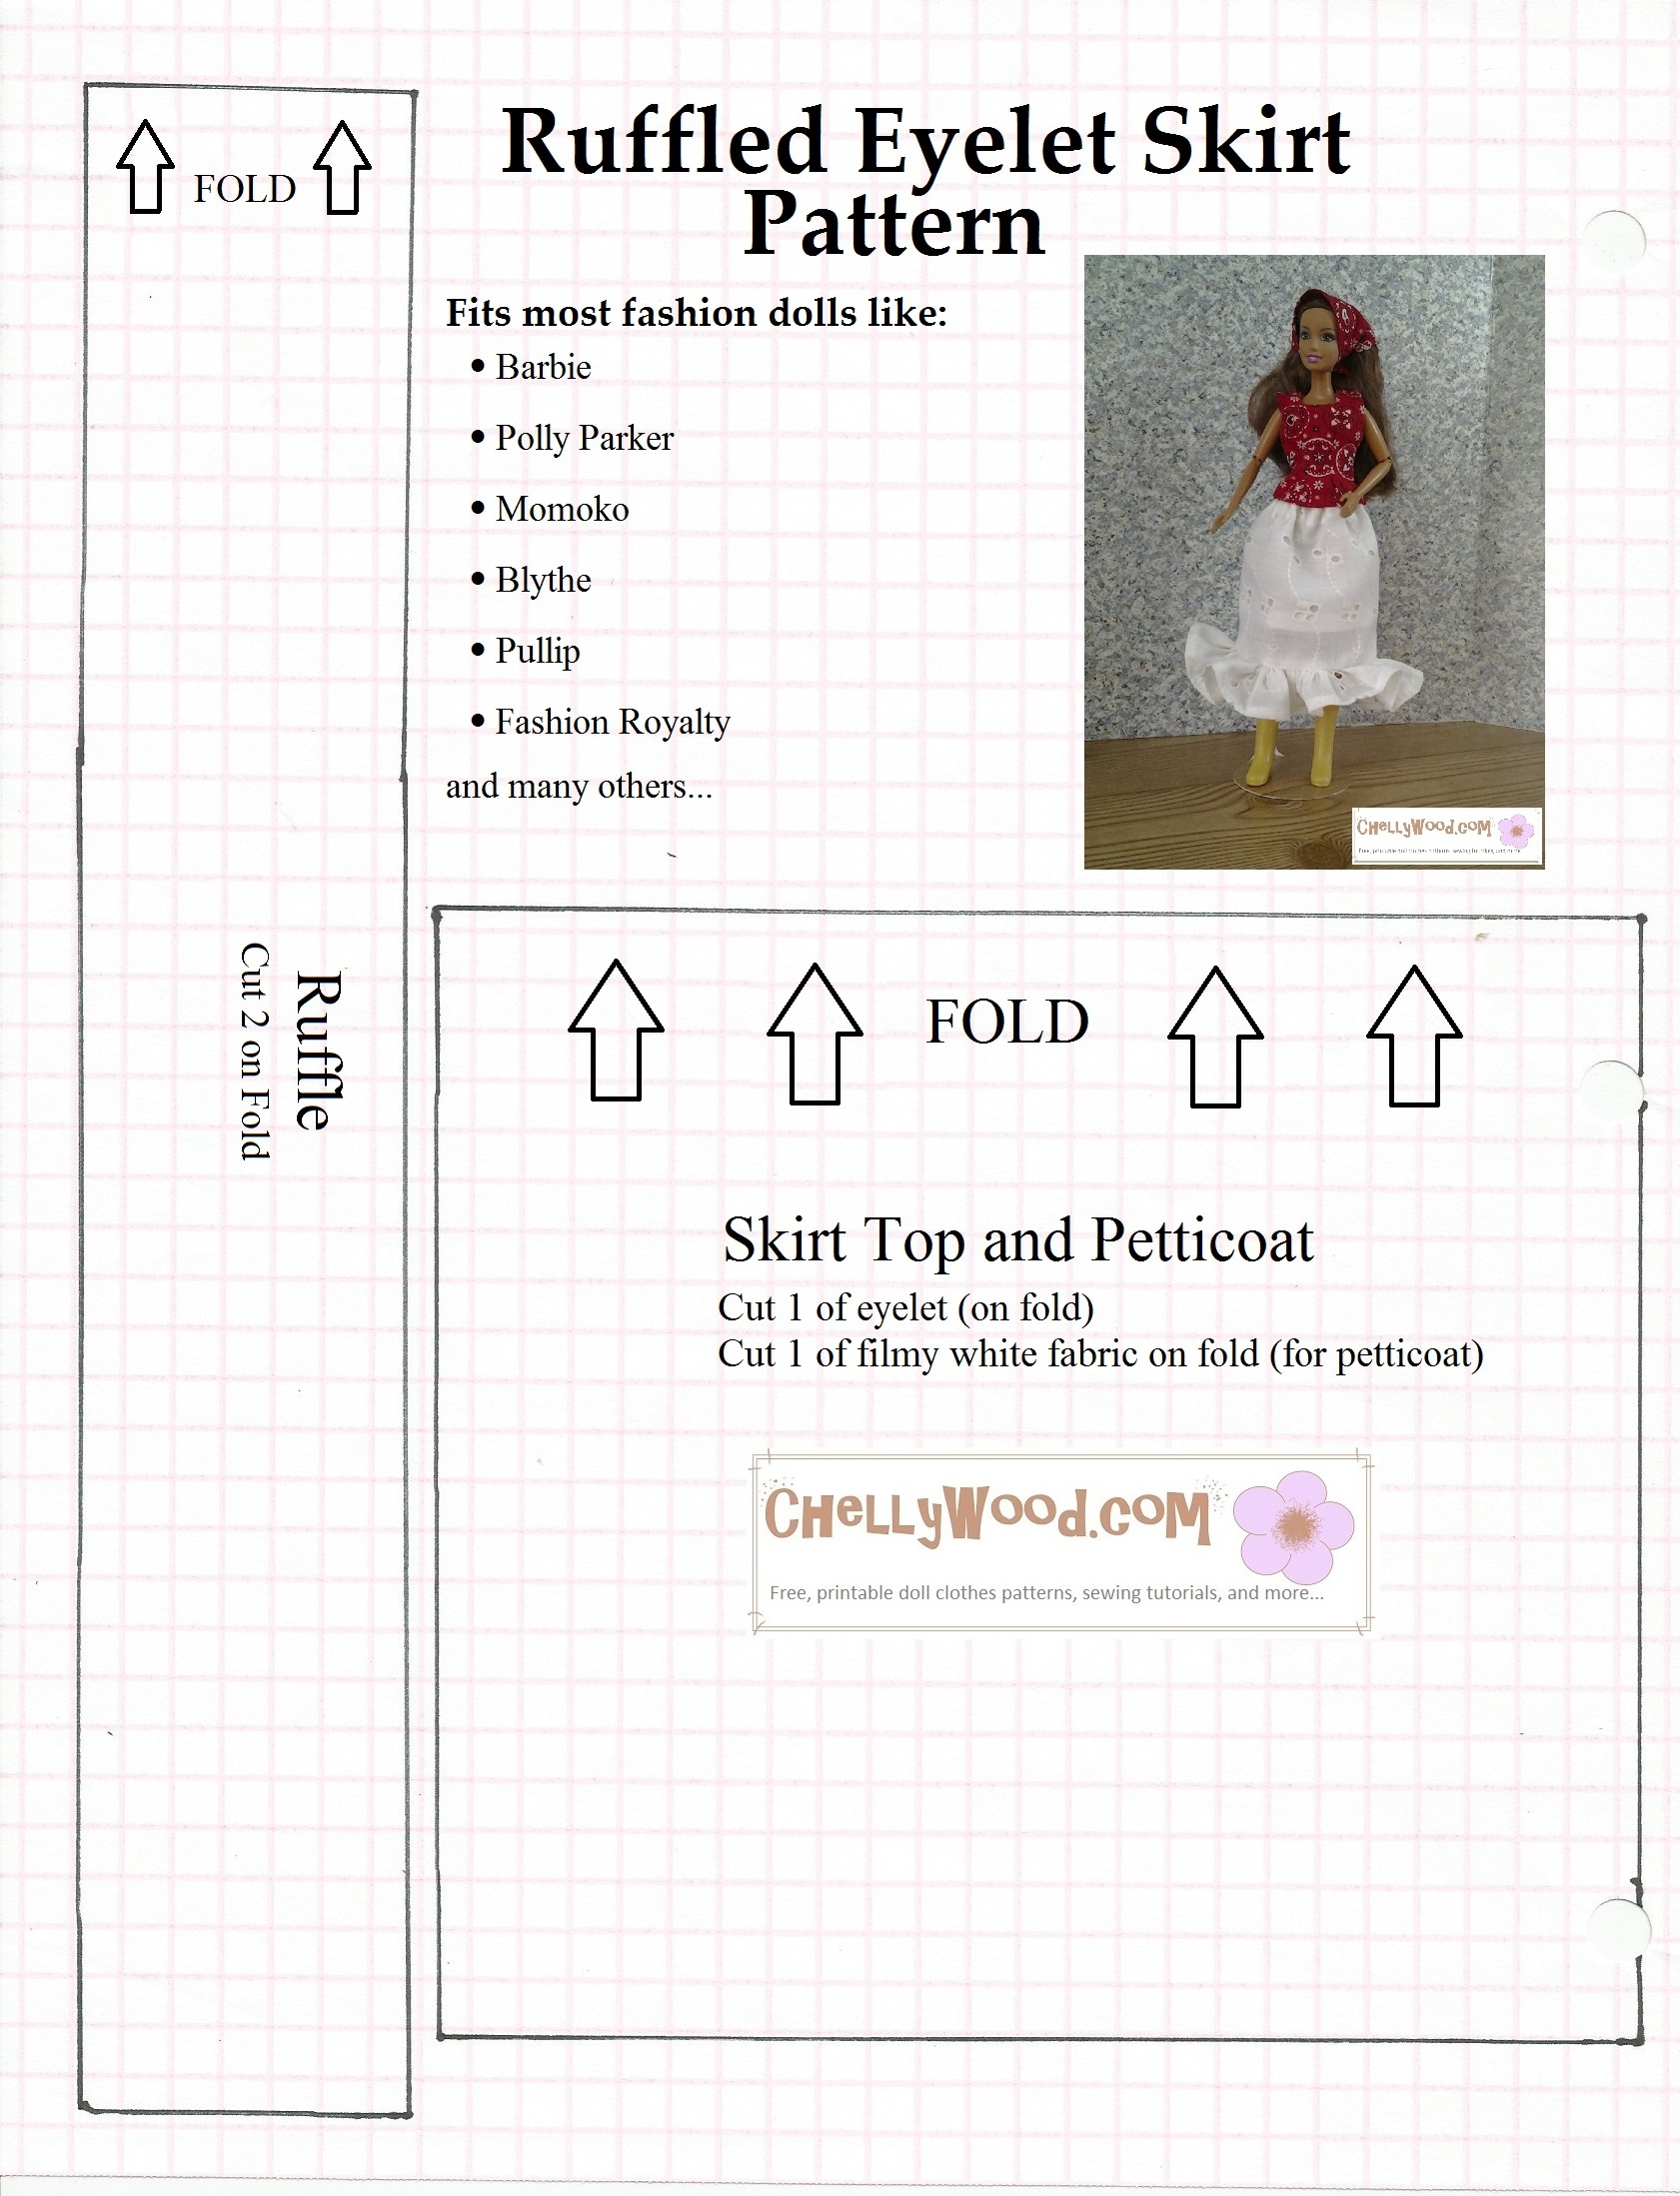 Sewing Printables Free Vintage Free Ruffled Eyelet Skirt Pattern For Dolls Chellywood